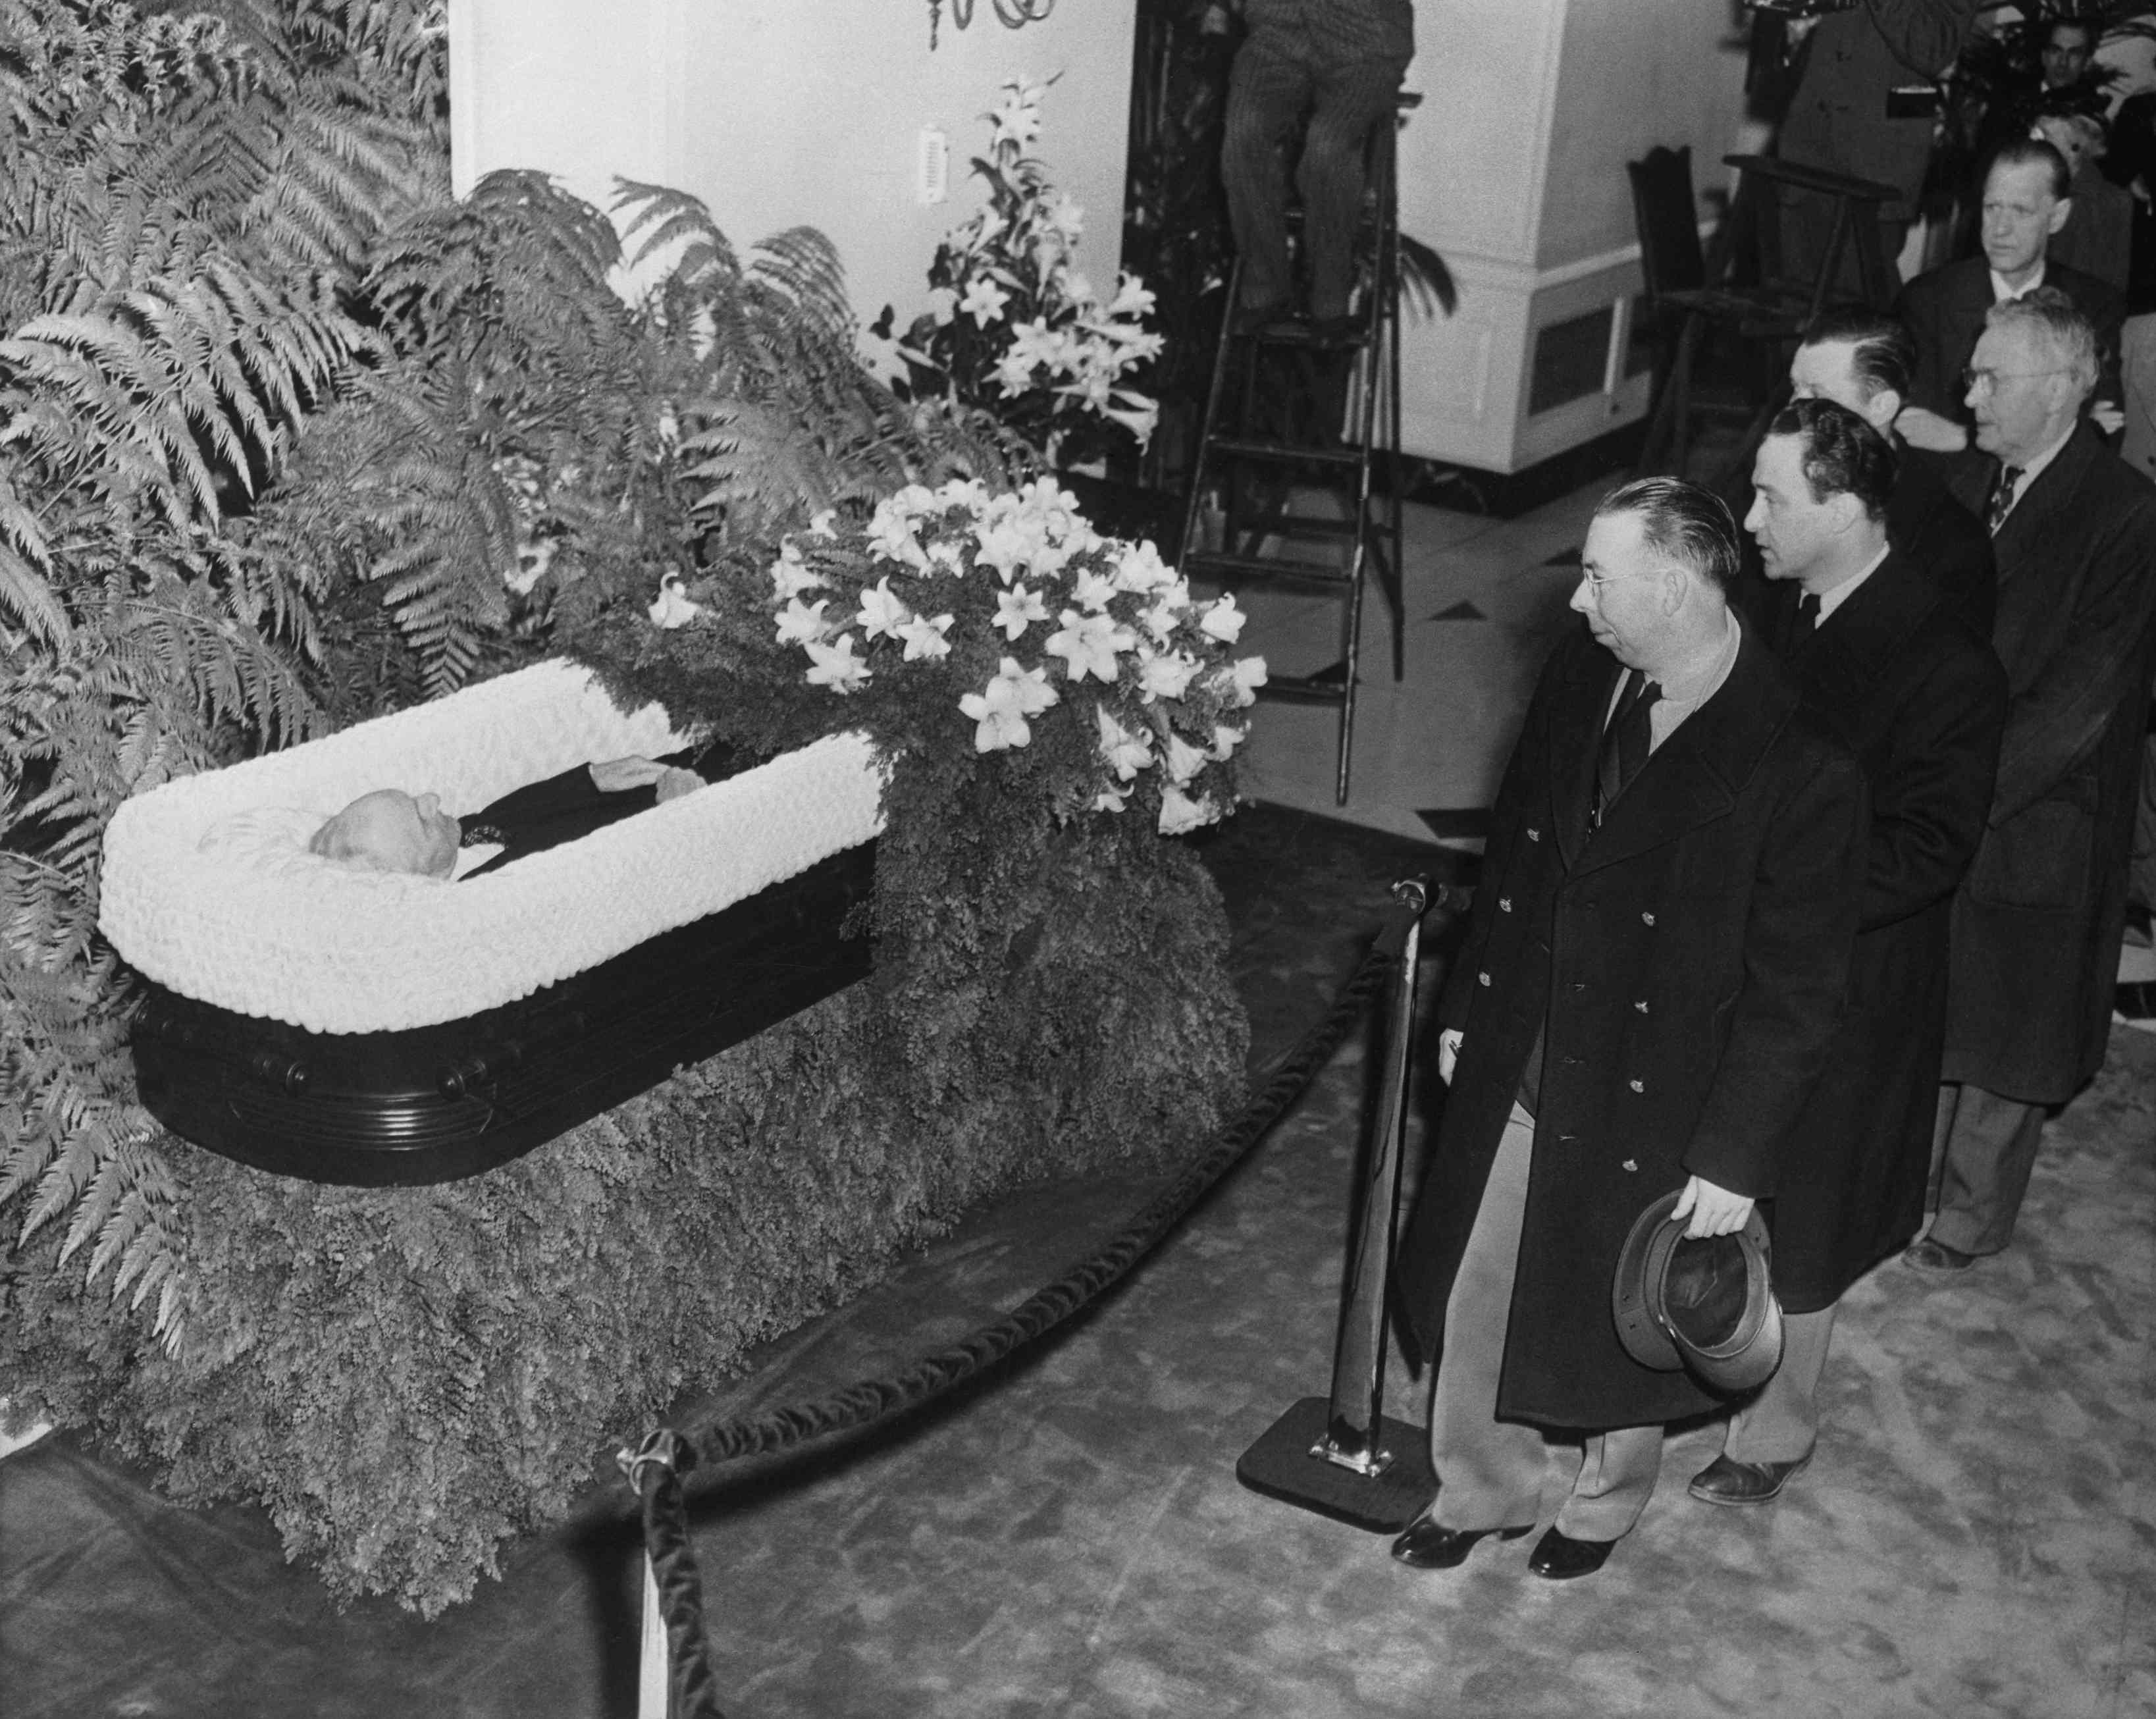 Mourners Filing Past Henry Ford in Casket